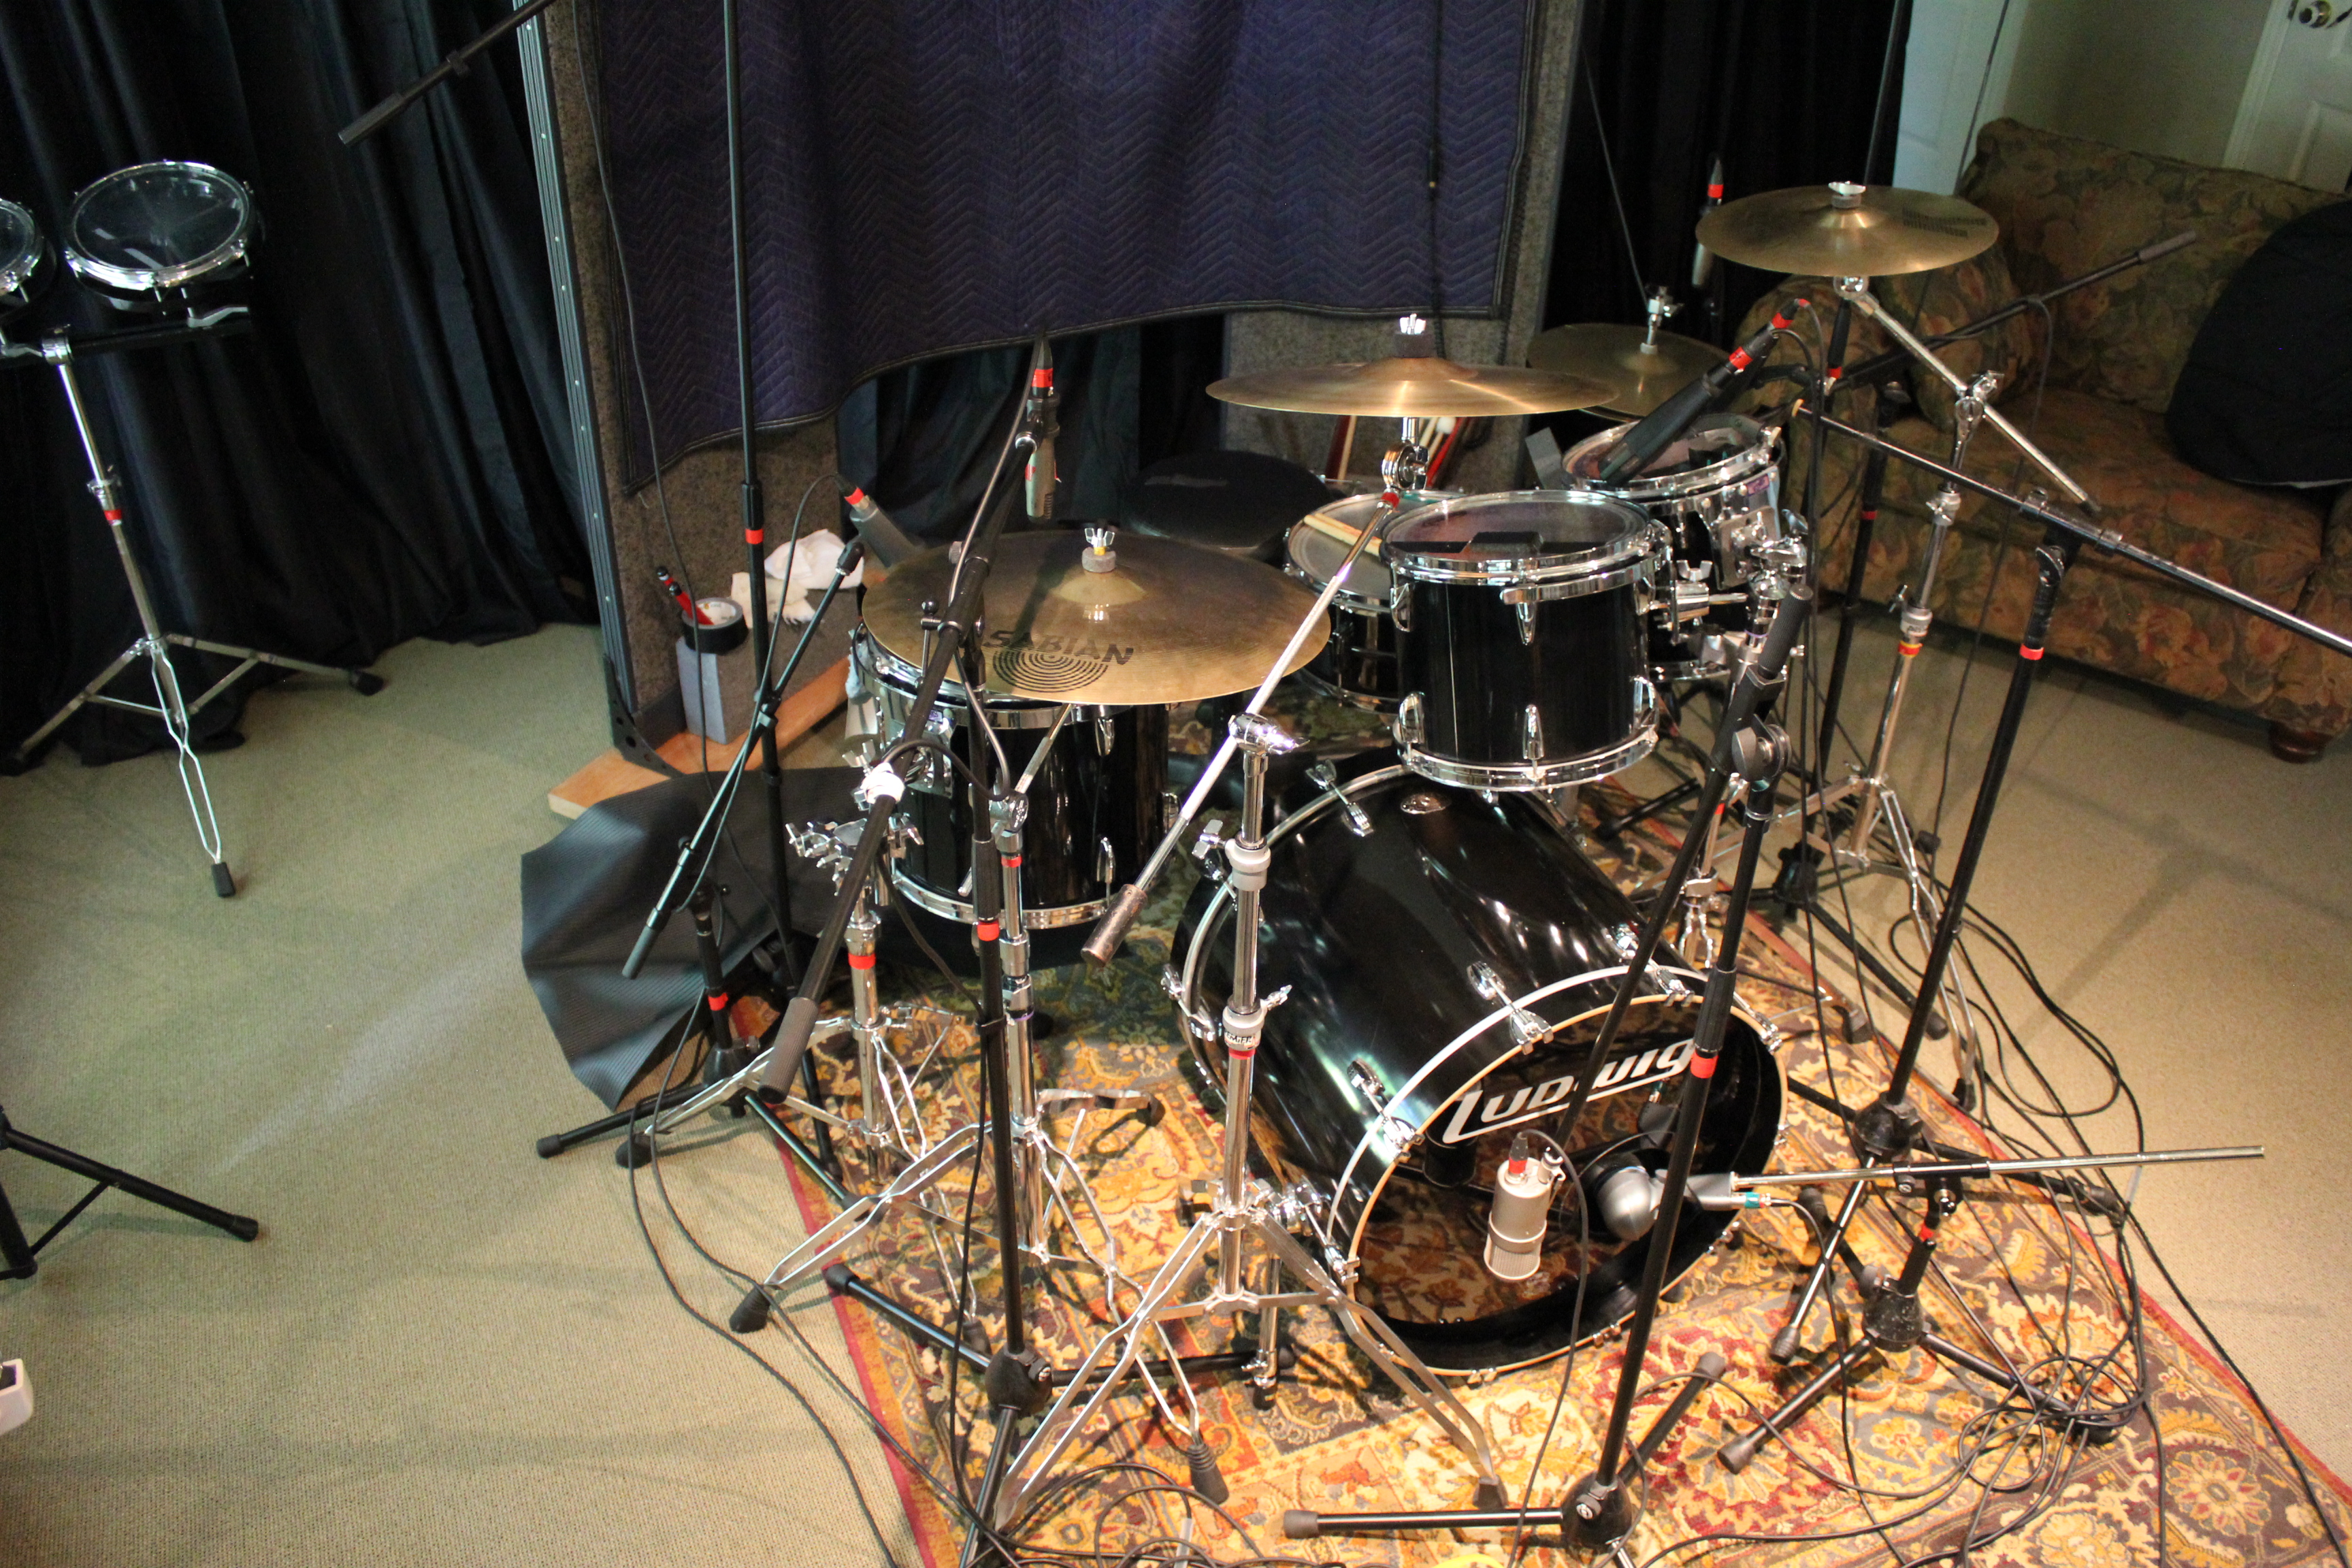 Tracking acoustic drums